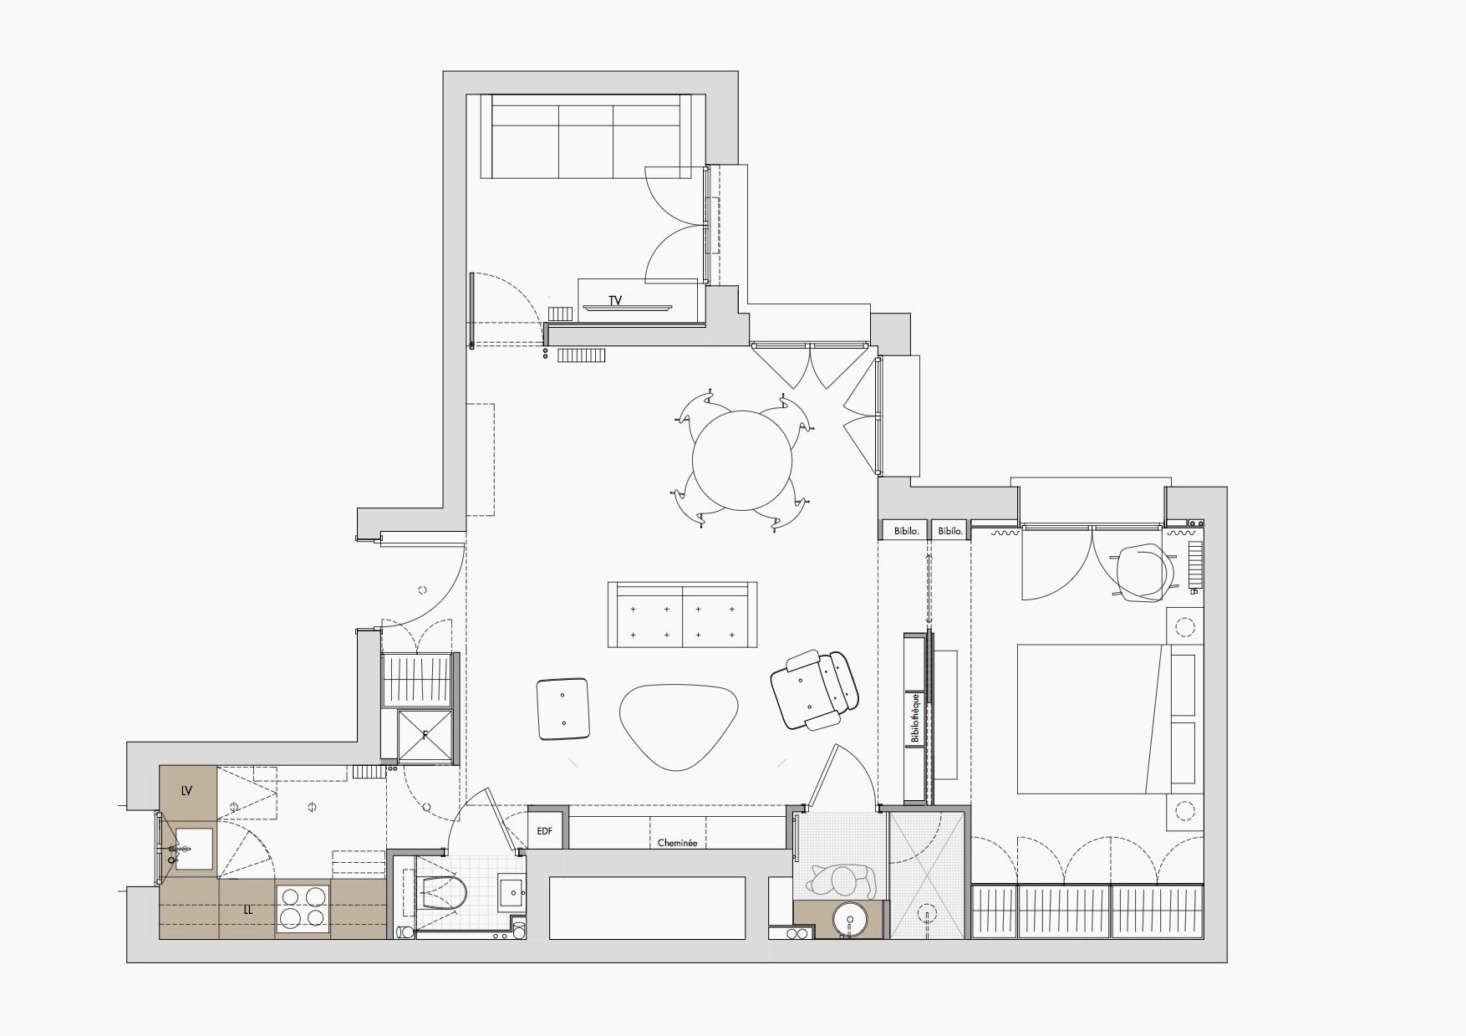 The floor plan details the allocation of space—and the way Harden was able to carve outthe addition of a TV room by relocating the kitchen. The compact bathroom is situated on one side of the fireplace, which is flanked on the other by a WC.